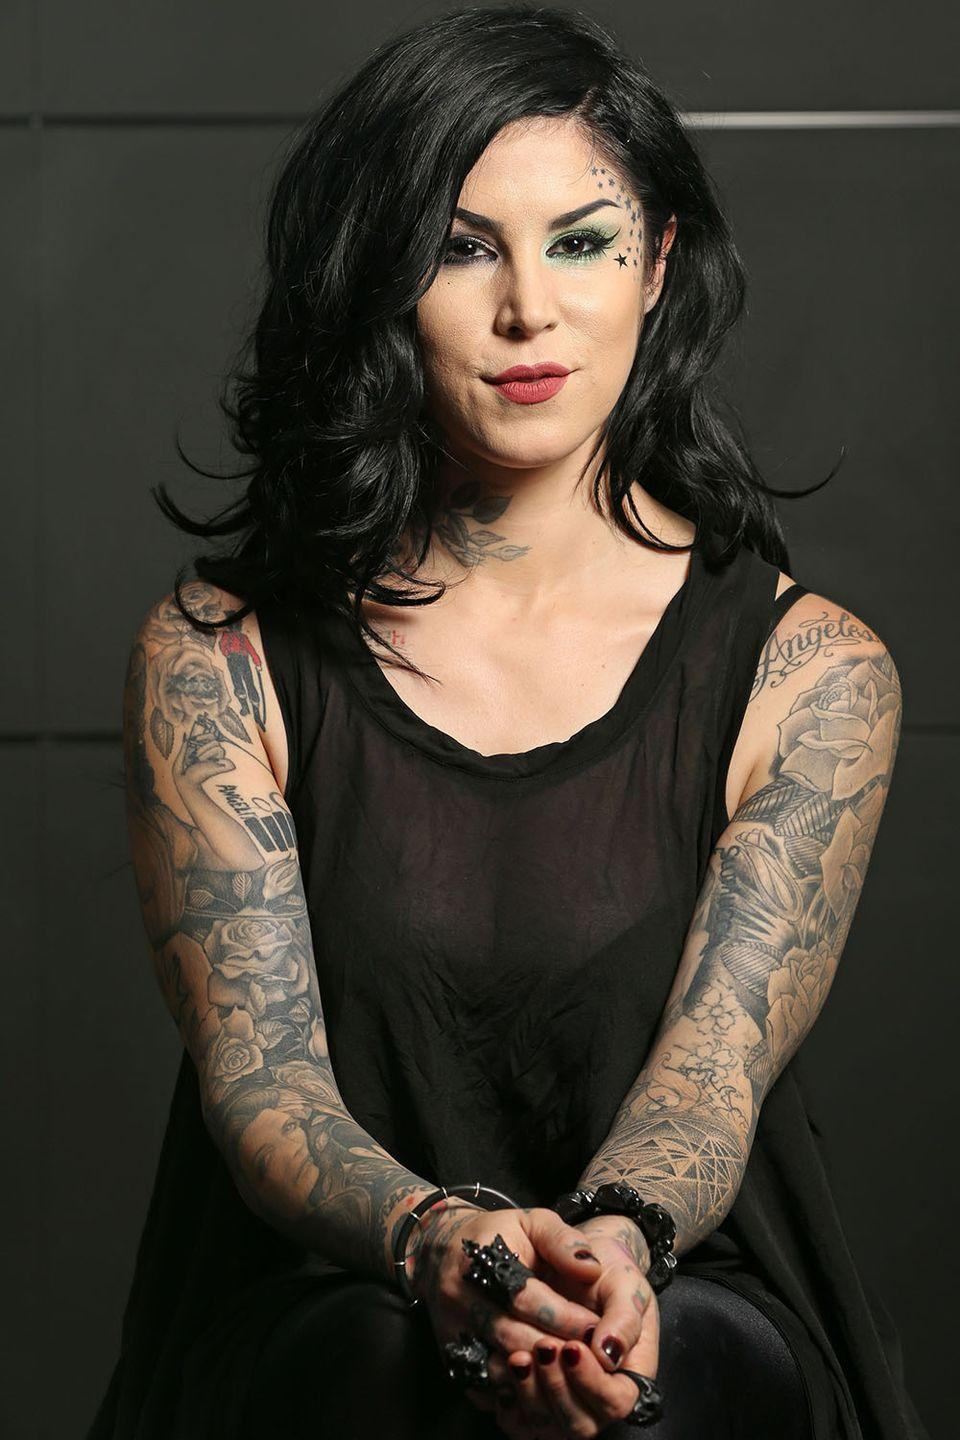 """<p>The famed tattoo artist and beauty entrepreneur announced her continued sobriety after years of drug and alcohol abuse with a celebratory <a href=""""https://www.instagram.com/p/BWQn_T4AbBN/"""" rel=""""nofollow noopener"""" target=""""_blank"""" data-ylk=""""slk:Instagram"""" class=""""link rapid-noclick-resp"""">Instagram</a> post.</p>"""